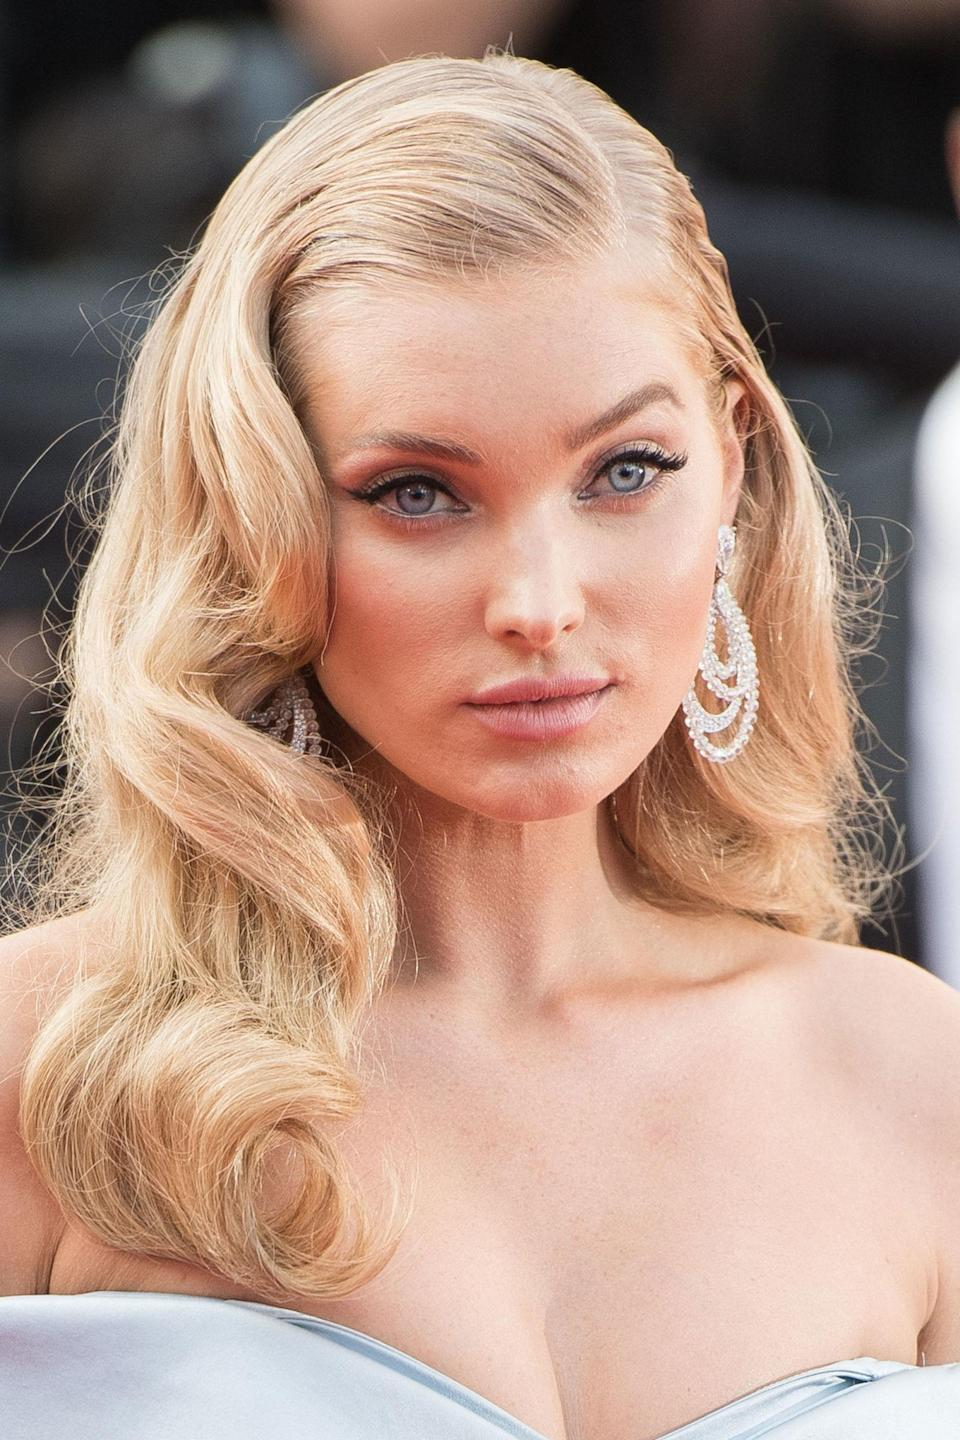 <p>The Victoria's Secret Angel played the princess at <em>The Beguiled</em> premiere with screen siren hair and doe-eyed make-up.</p>